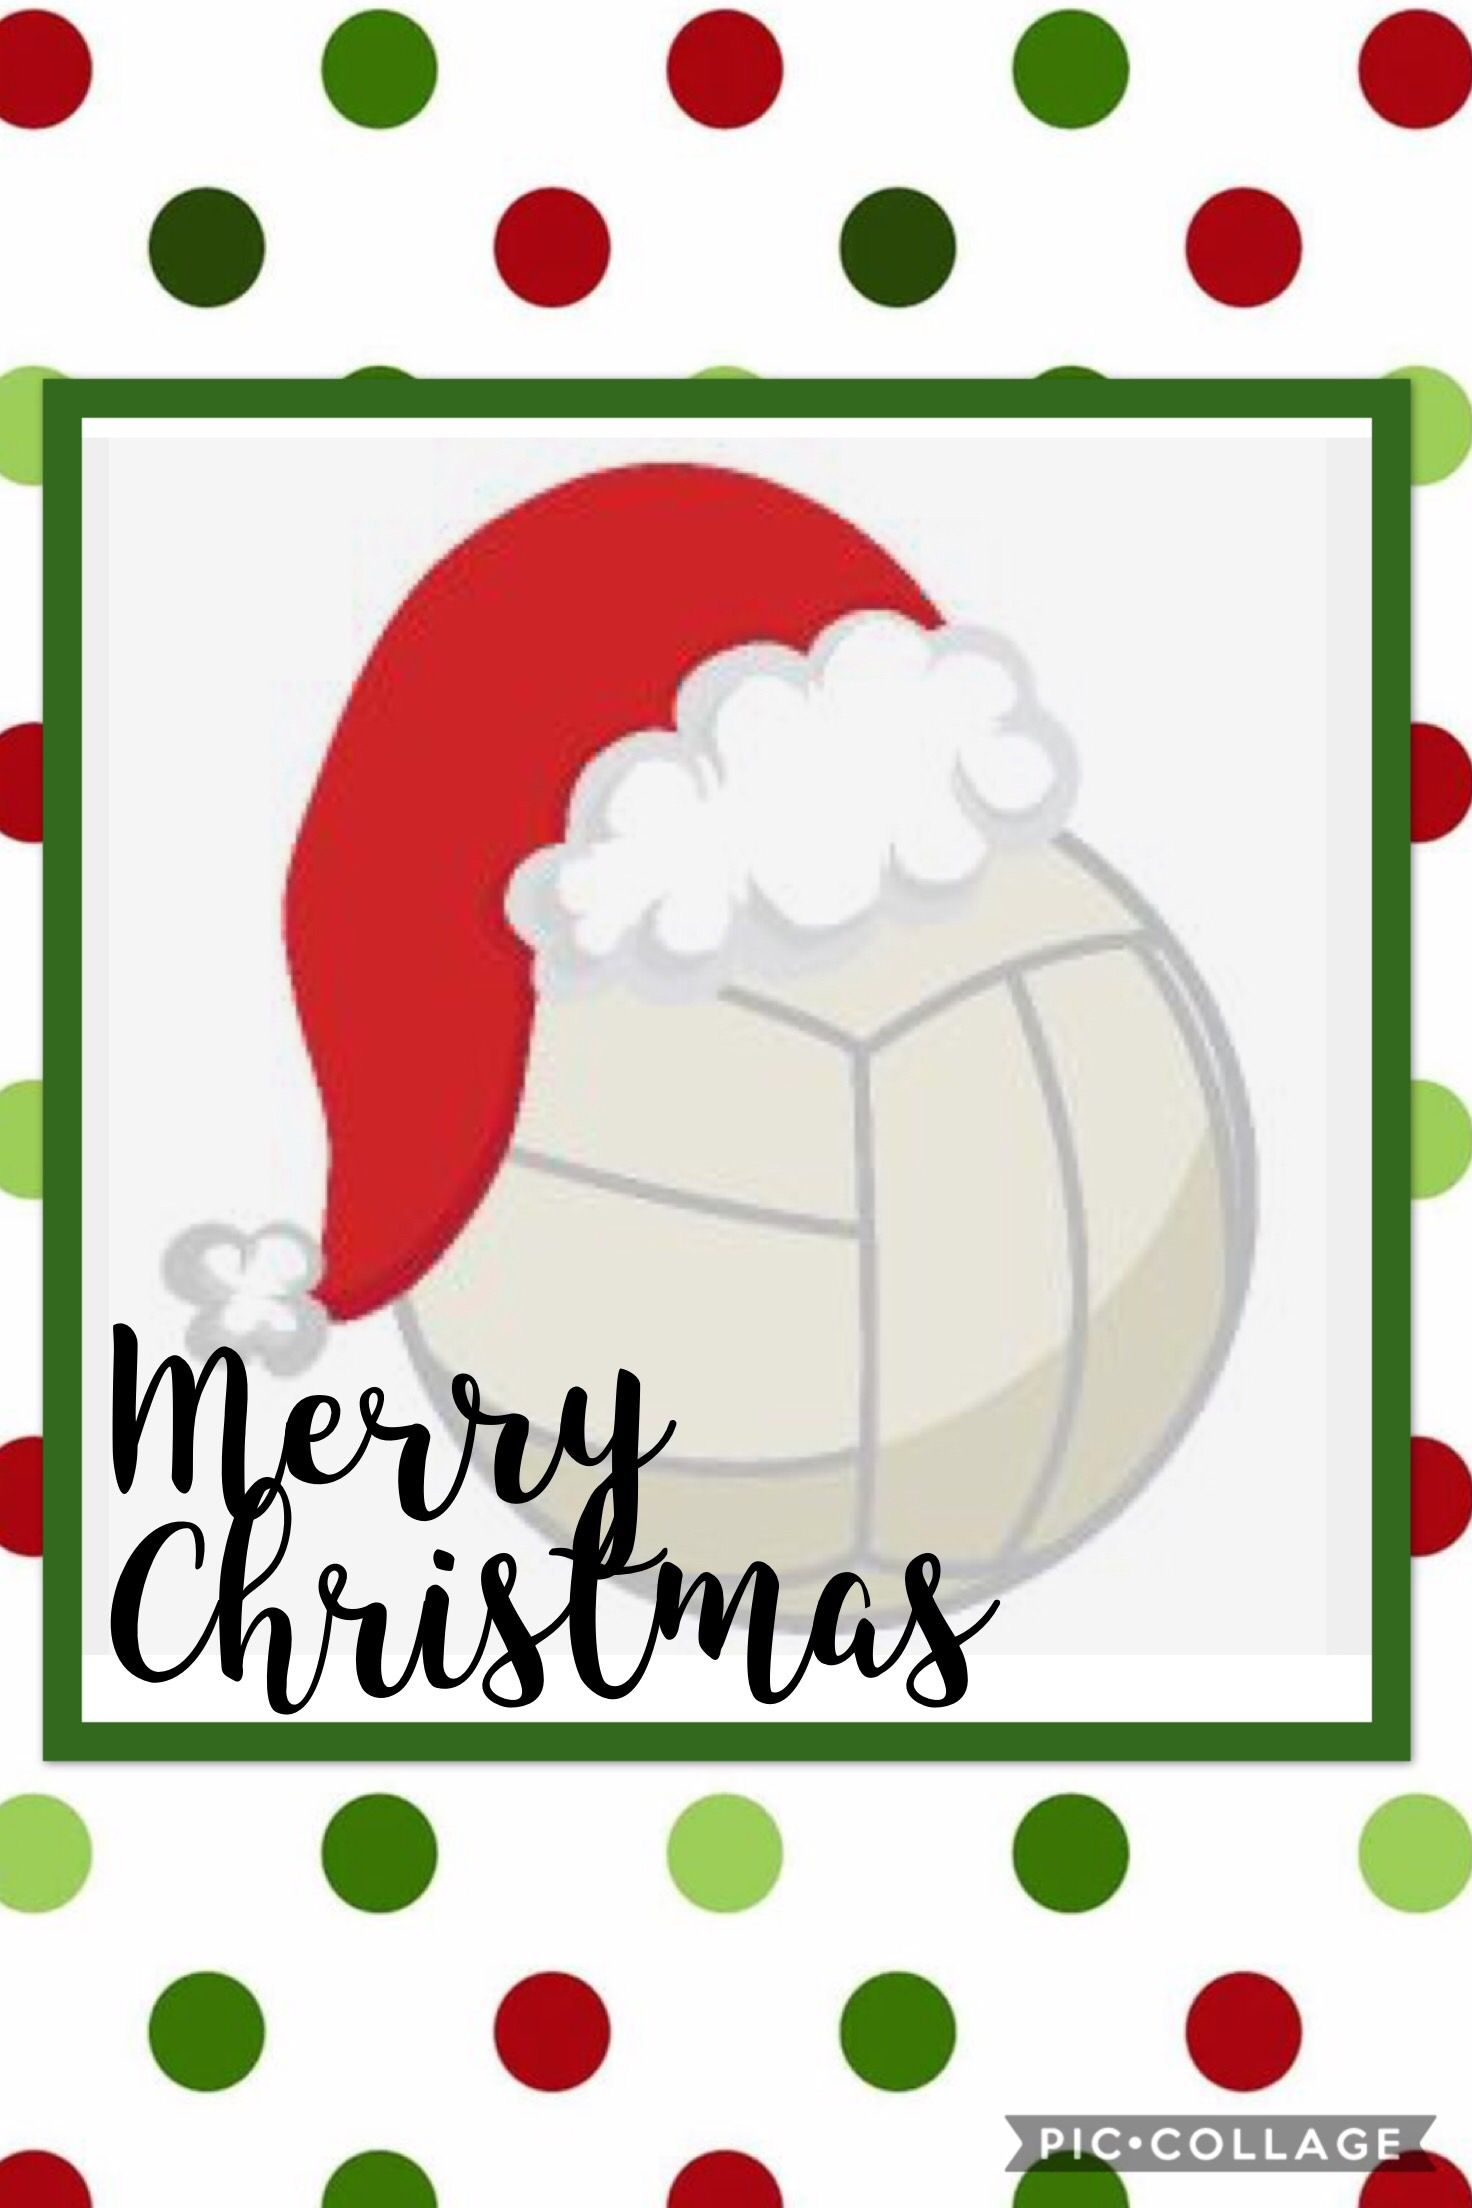 Fun Christmas Volleyball Wallpaper Volleyball Wallpaper Christmas Fun Volleyball